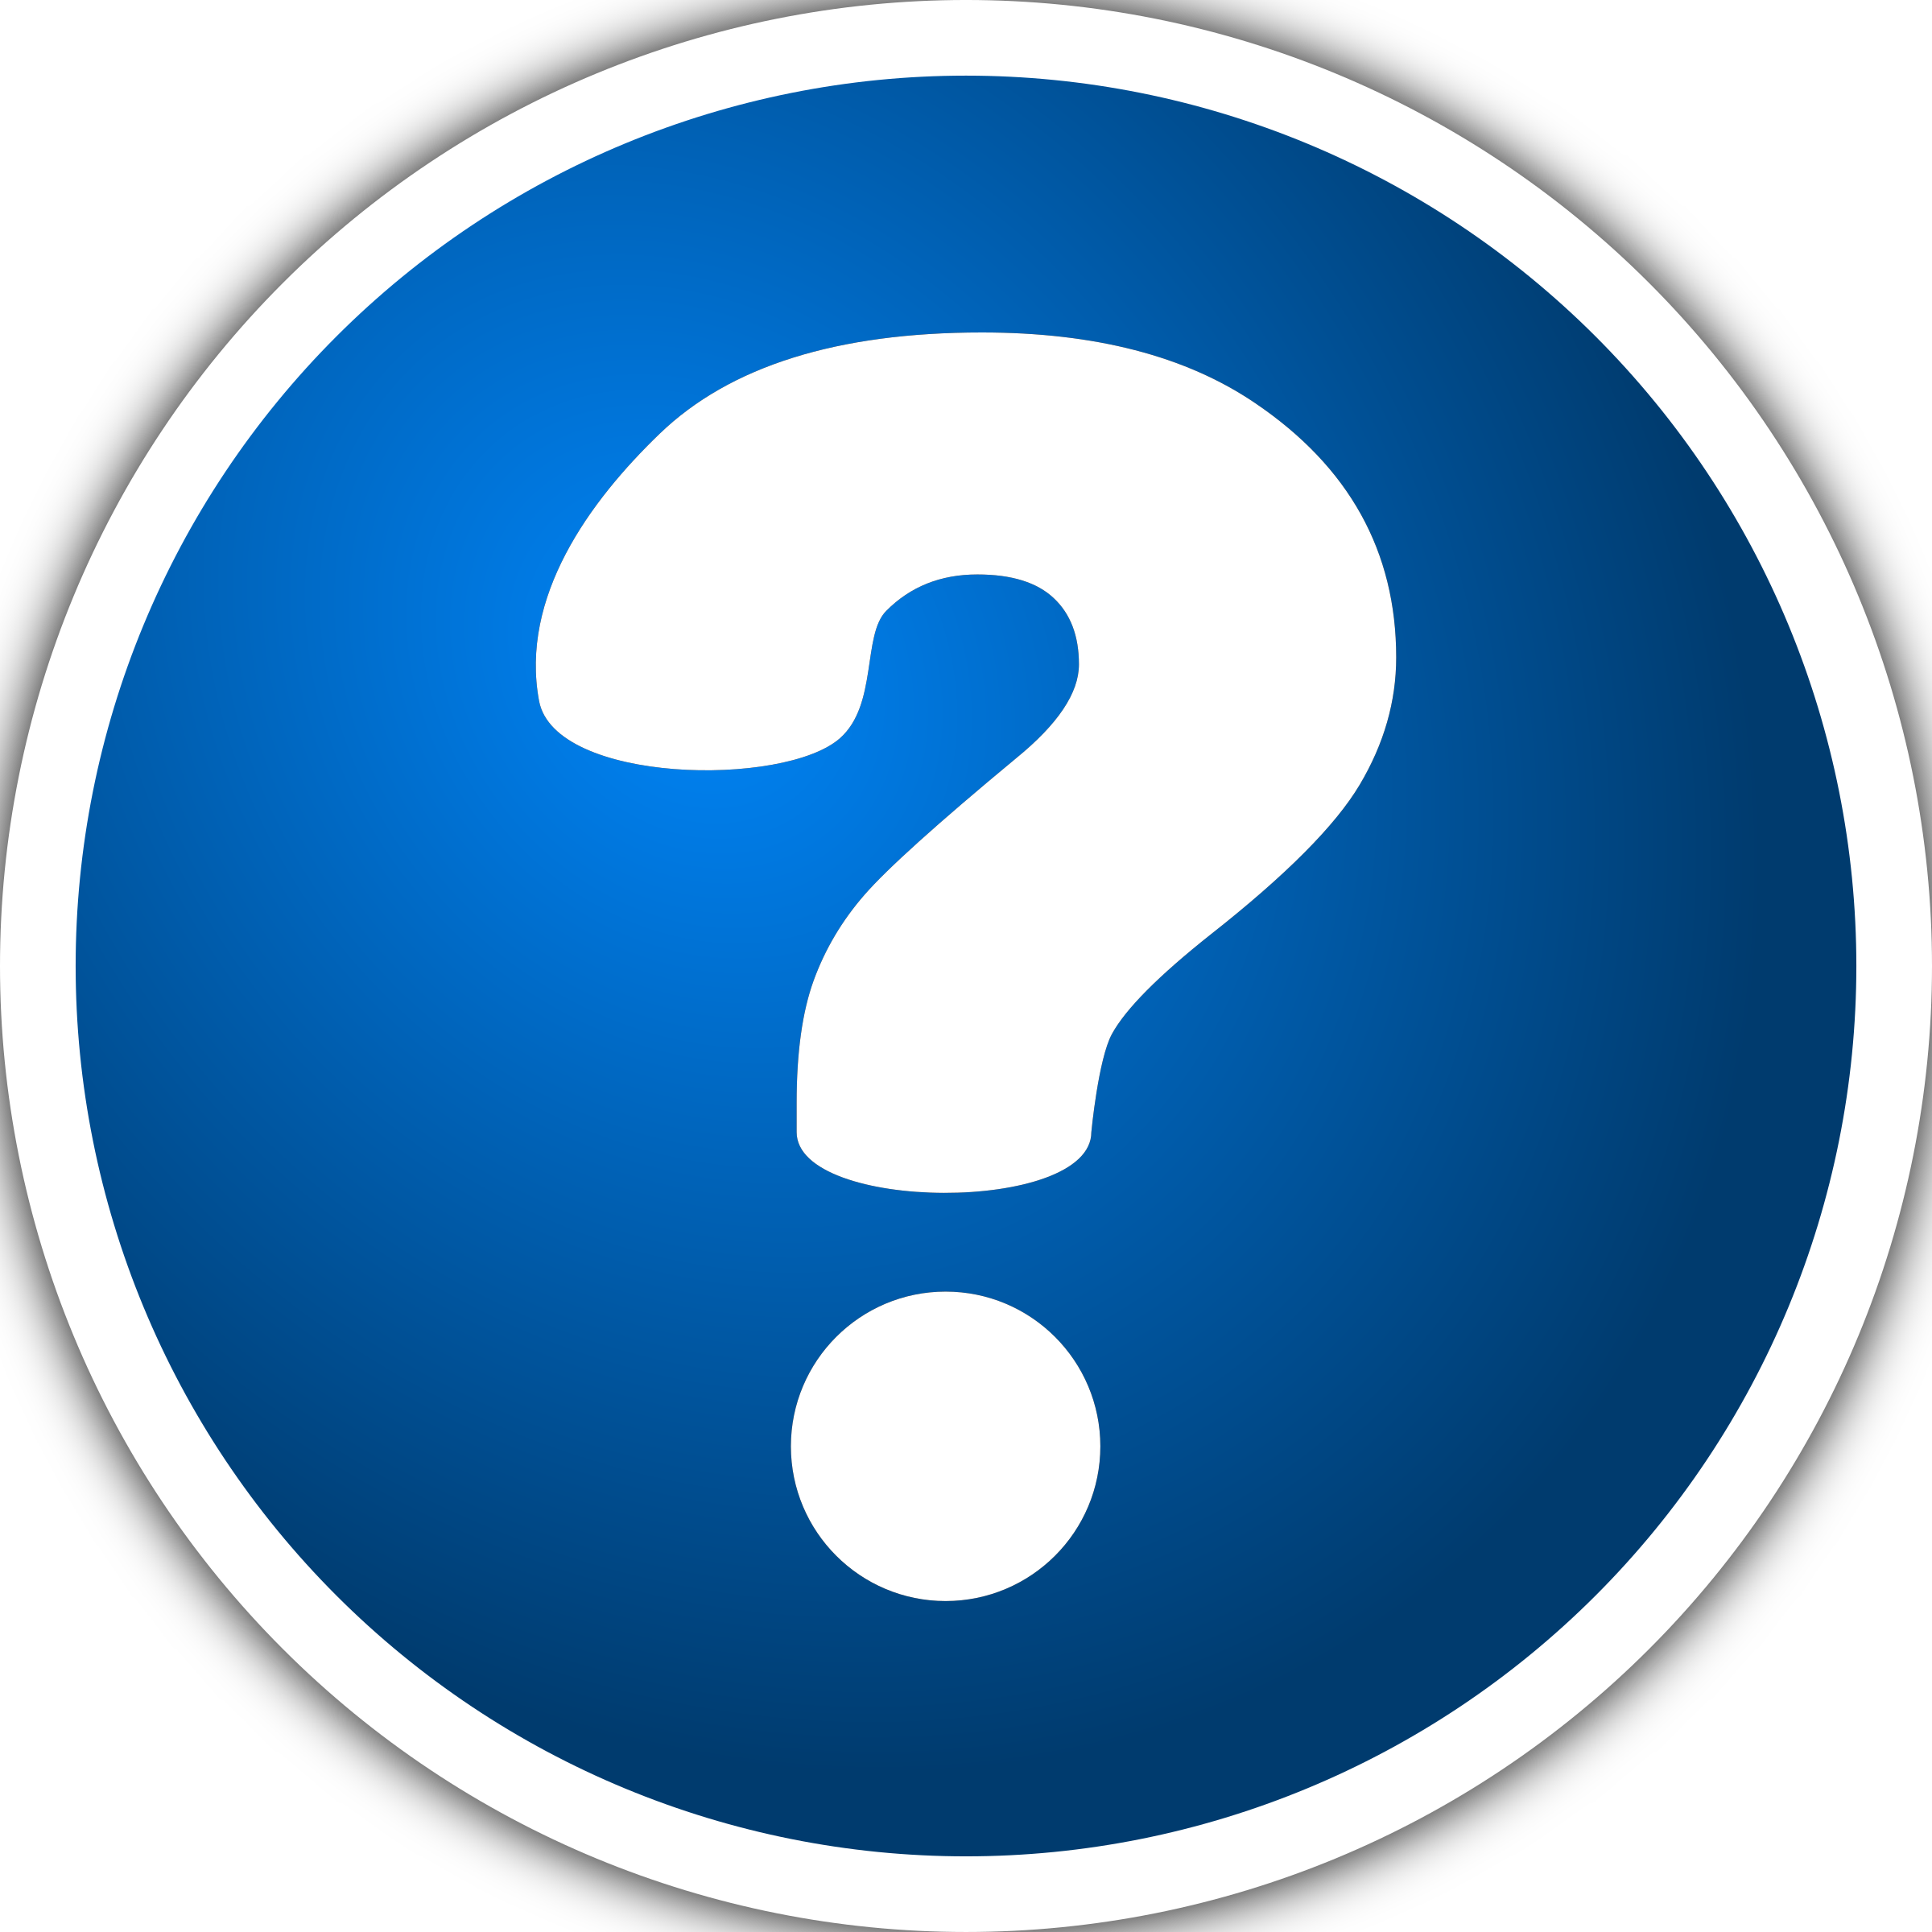 Icon with question mark by purzen